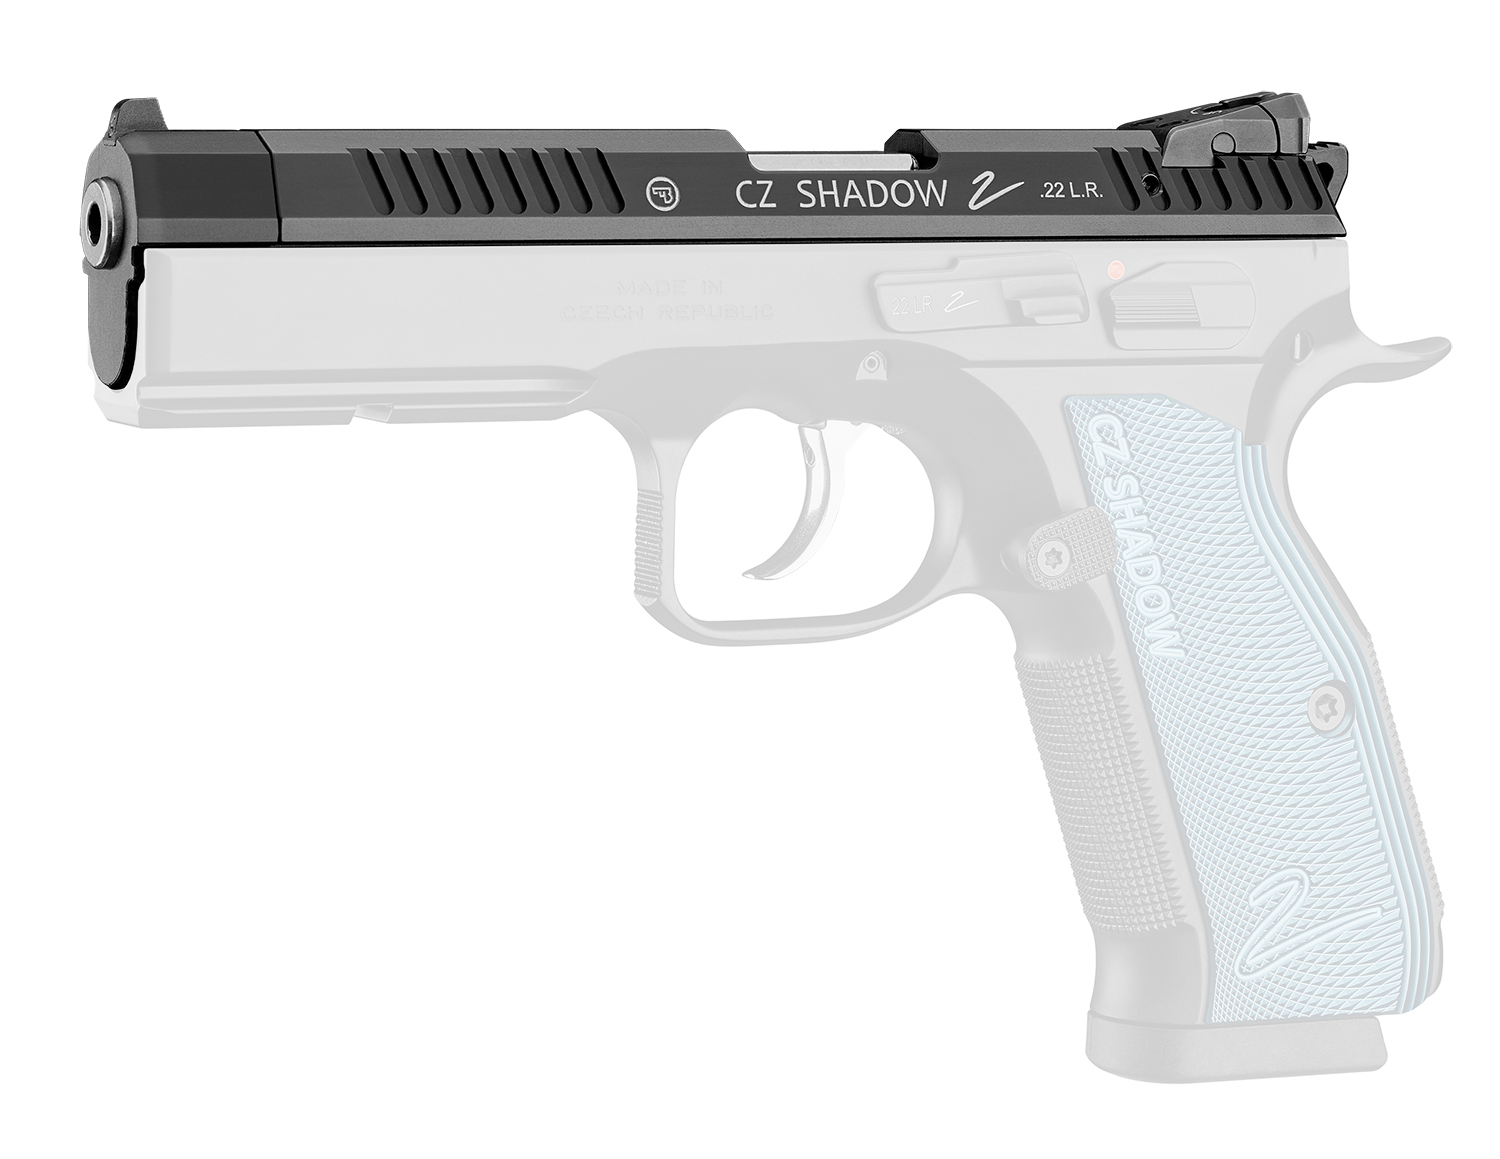 CZ Shadow 2 Kadett .22 l.r. We